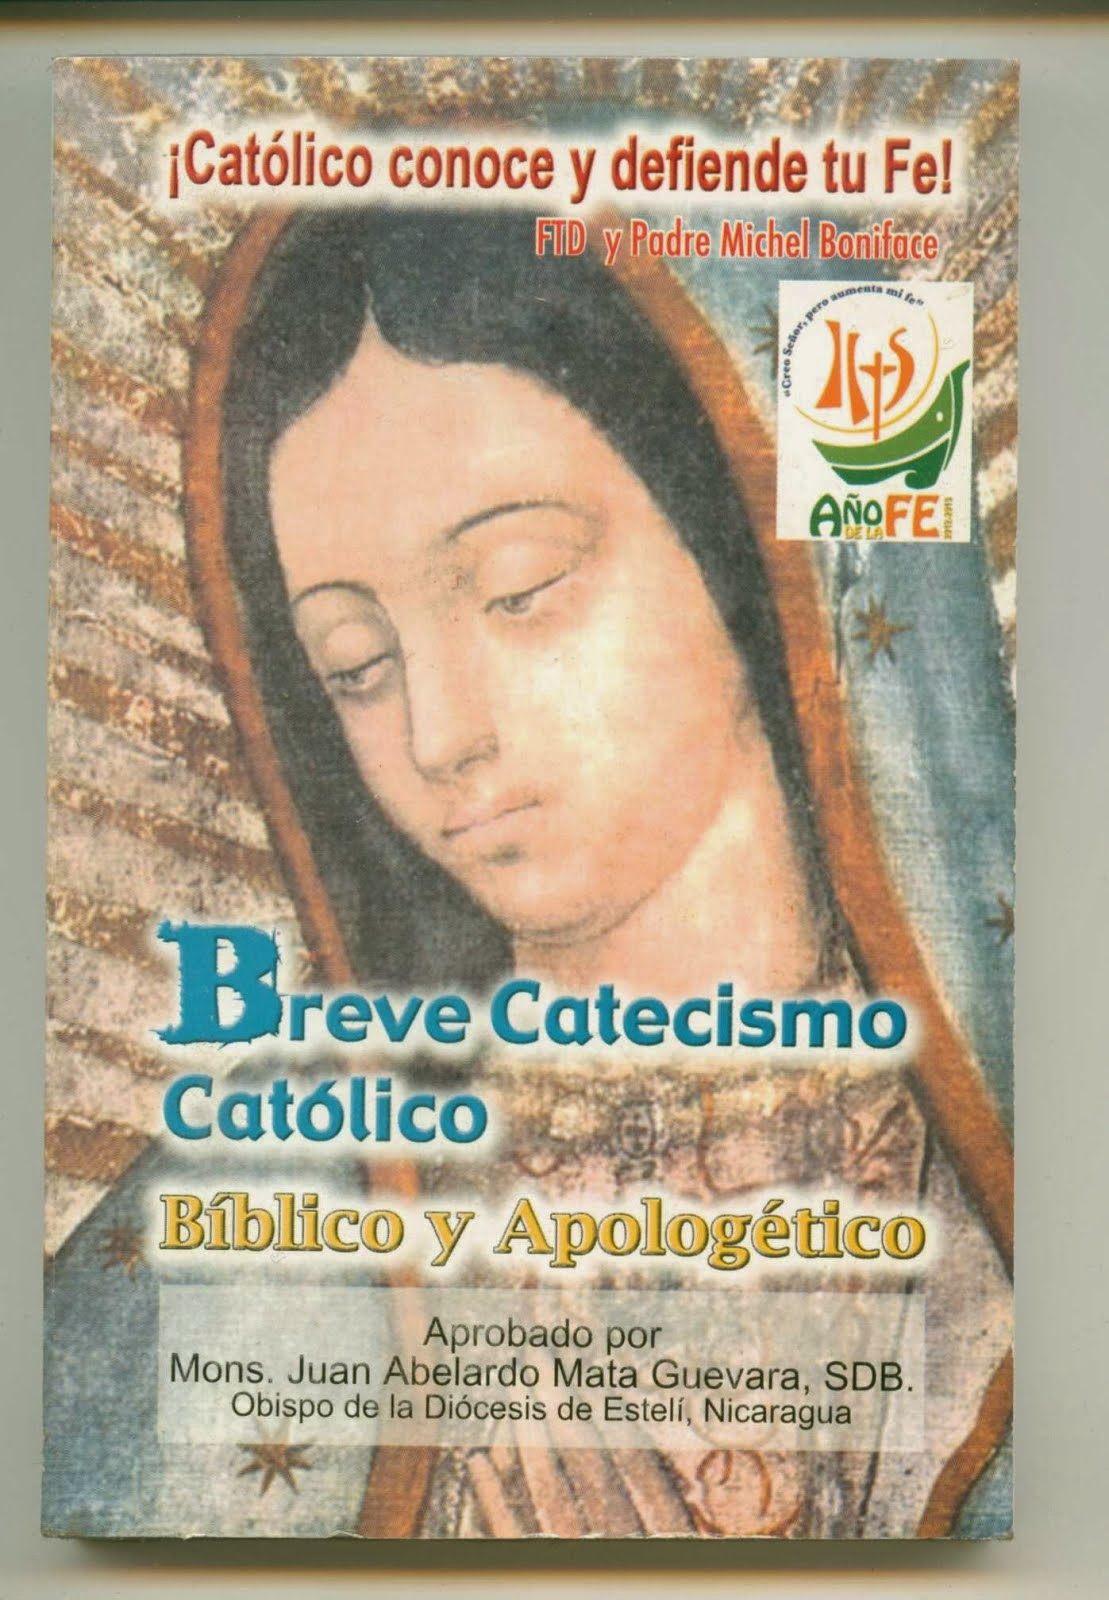 NOVEDAD: BREVE CATECISMO CATÓLICO, BÍBLICO Y APOLOGÉTICO (Aprobado por Mons. Juan A. Mata)